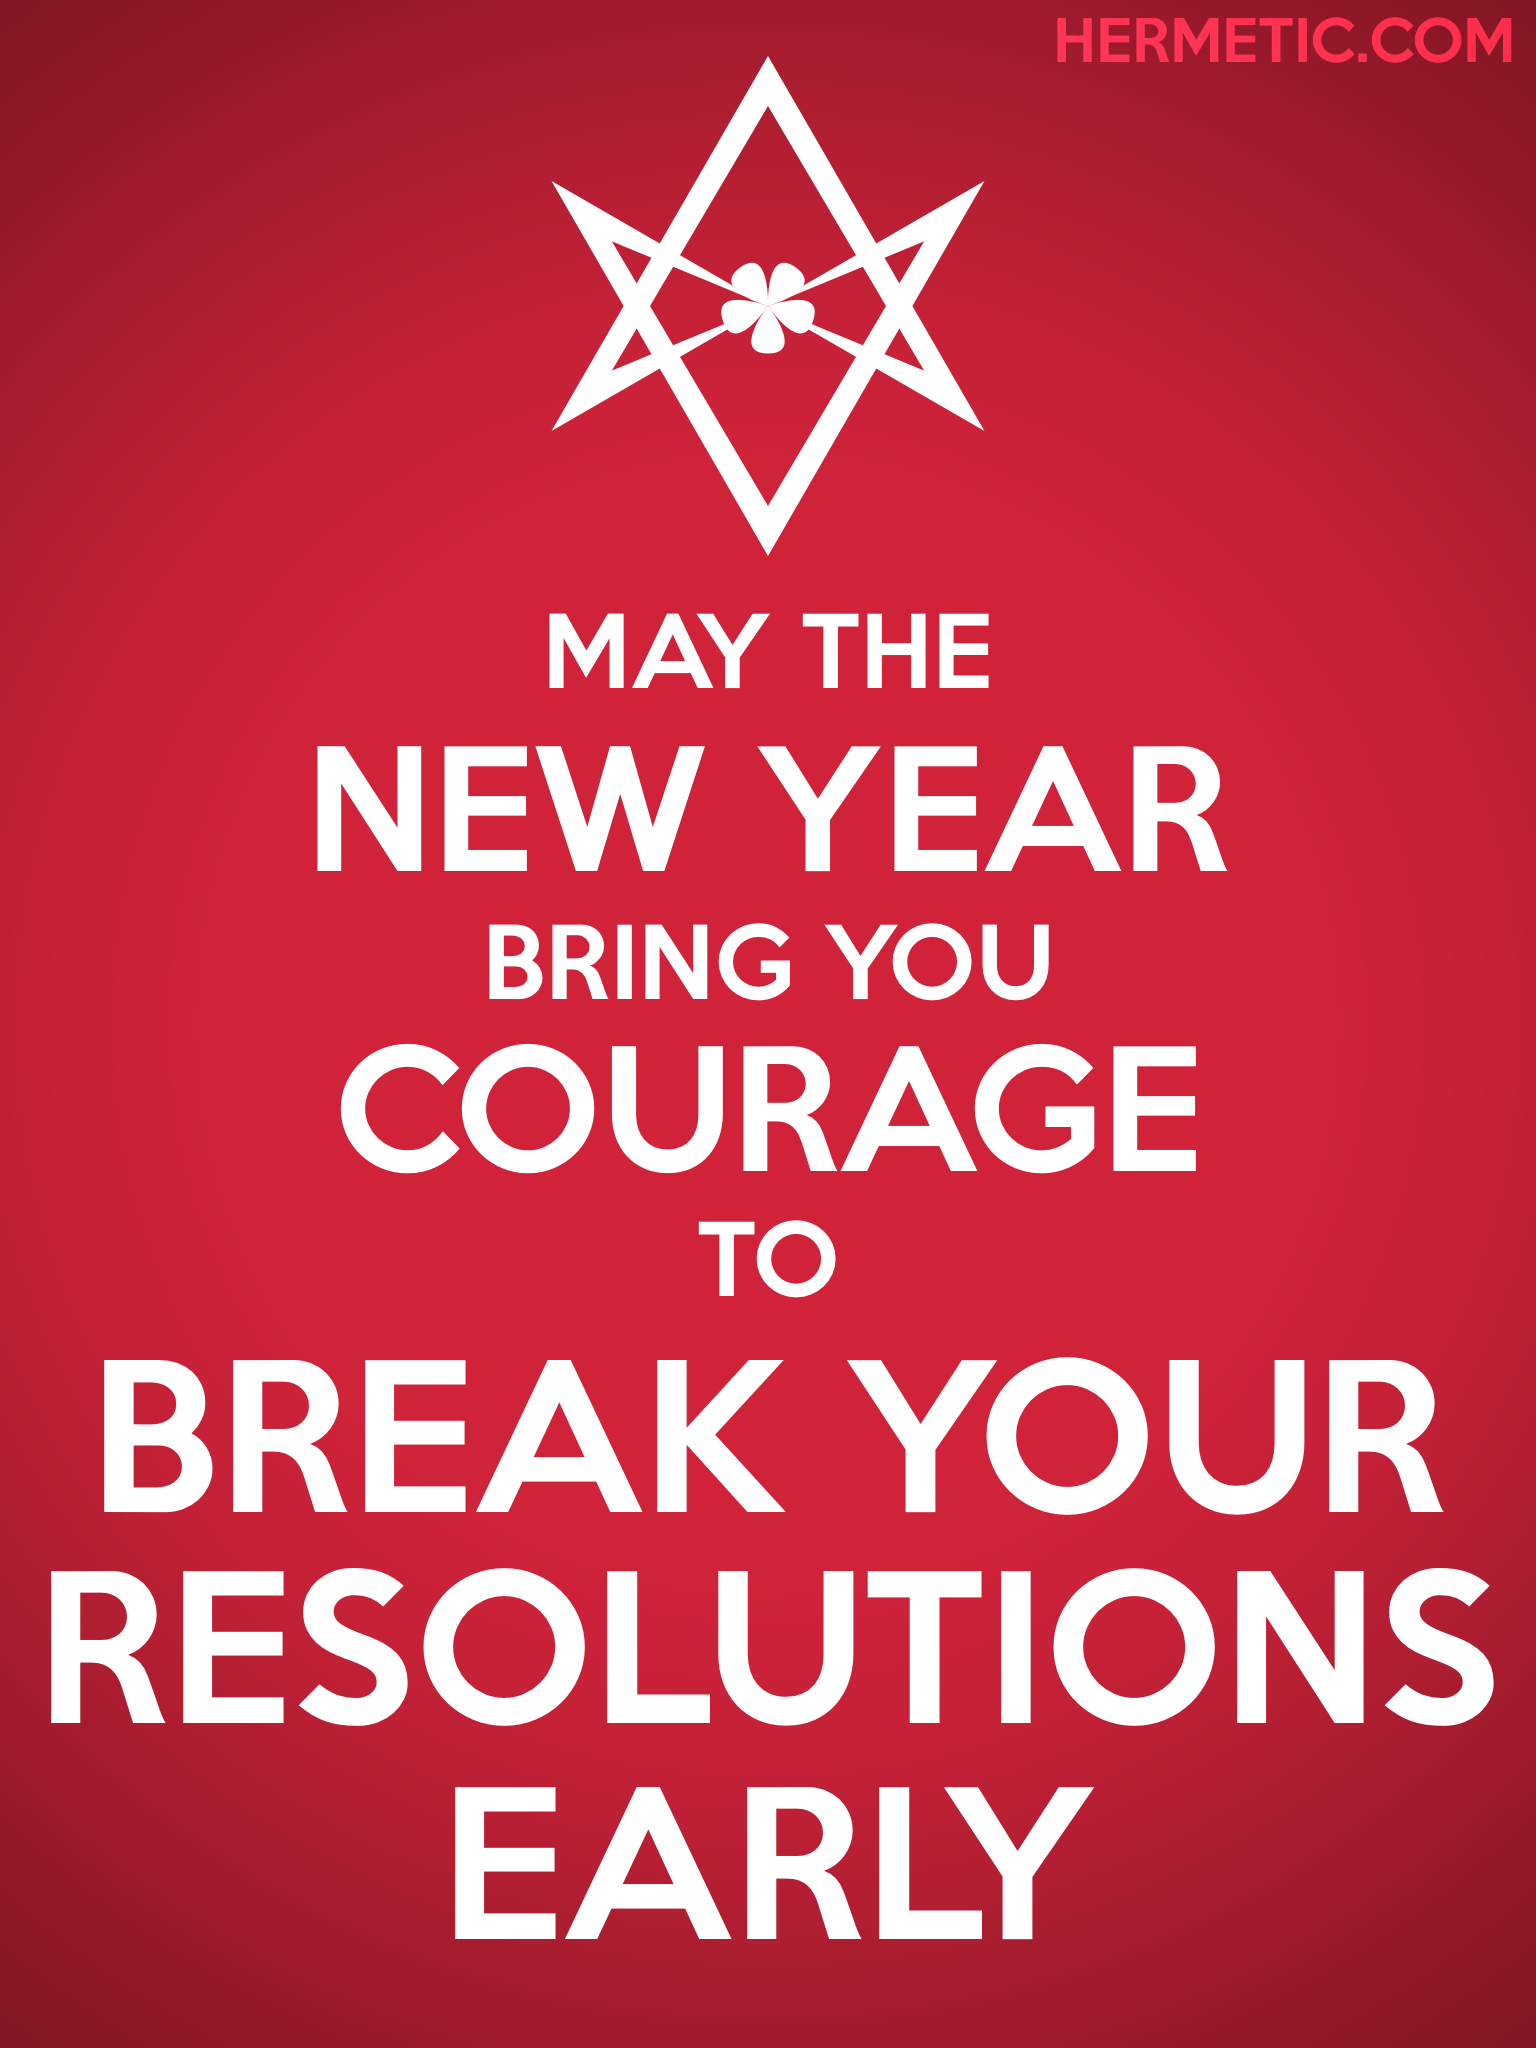 Unicursal NEW YEAR COURAGE Propaganda Poster from Hermetic Library Office of the Ministry of Information